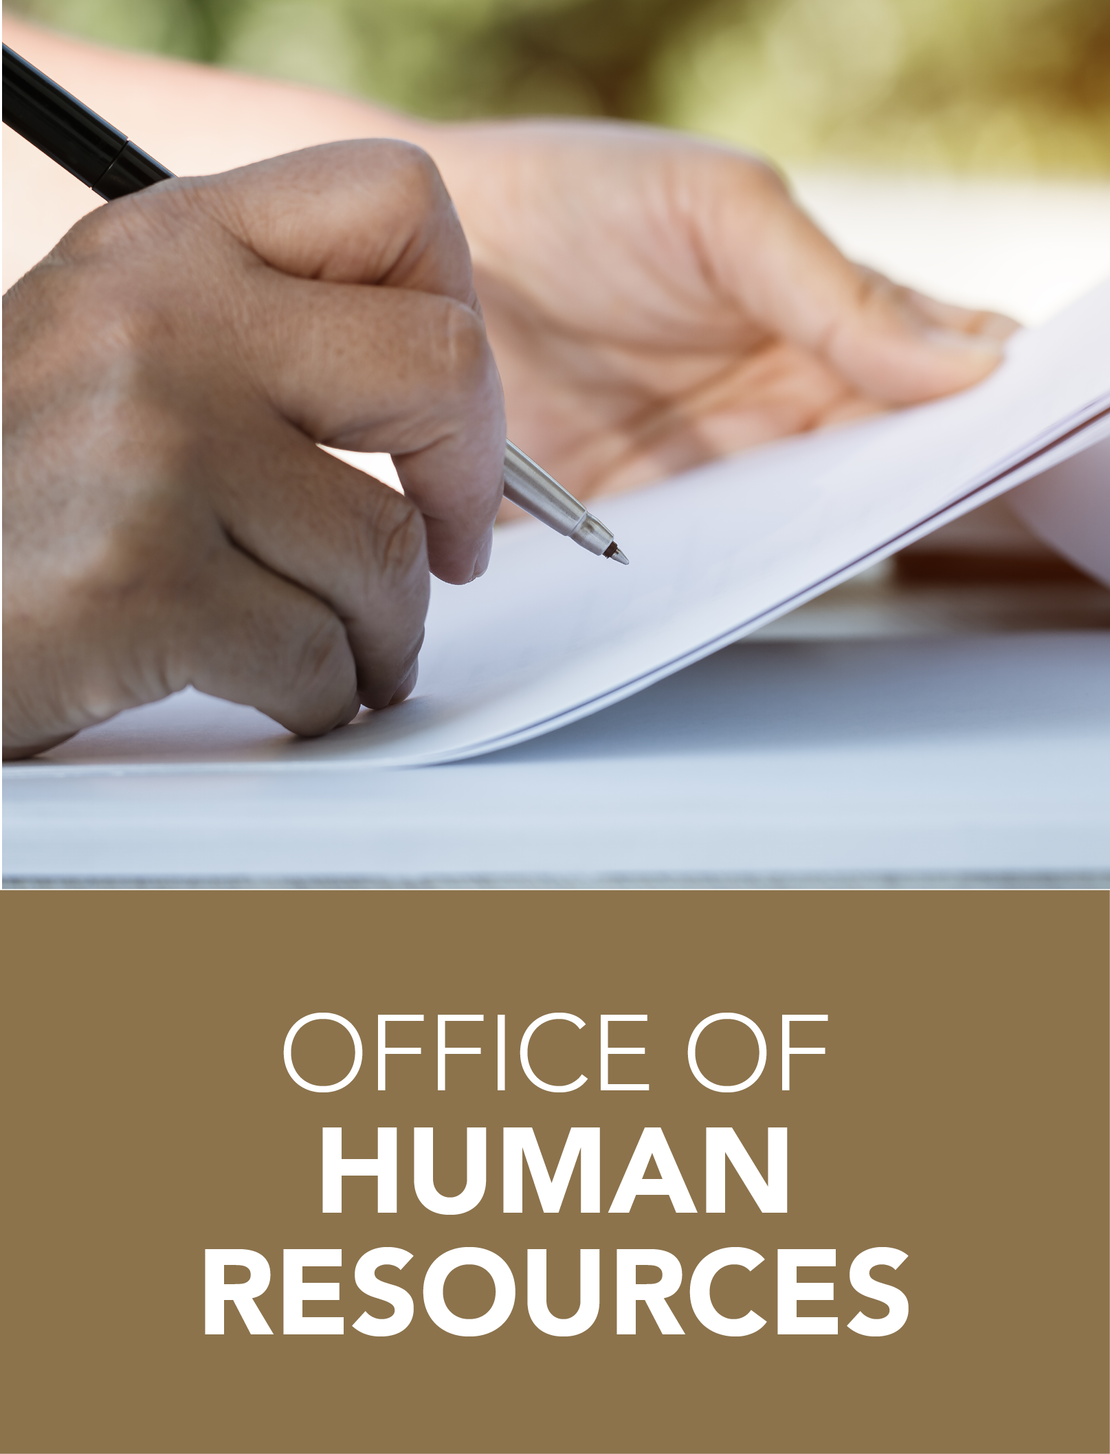 OFFICE OF HUMAN RESOURCES LINK